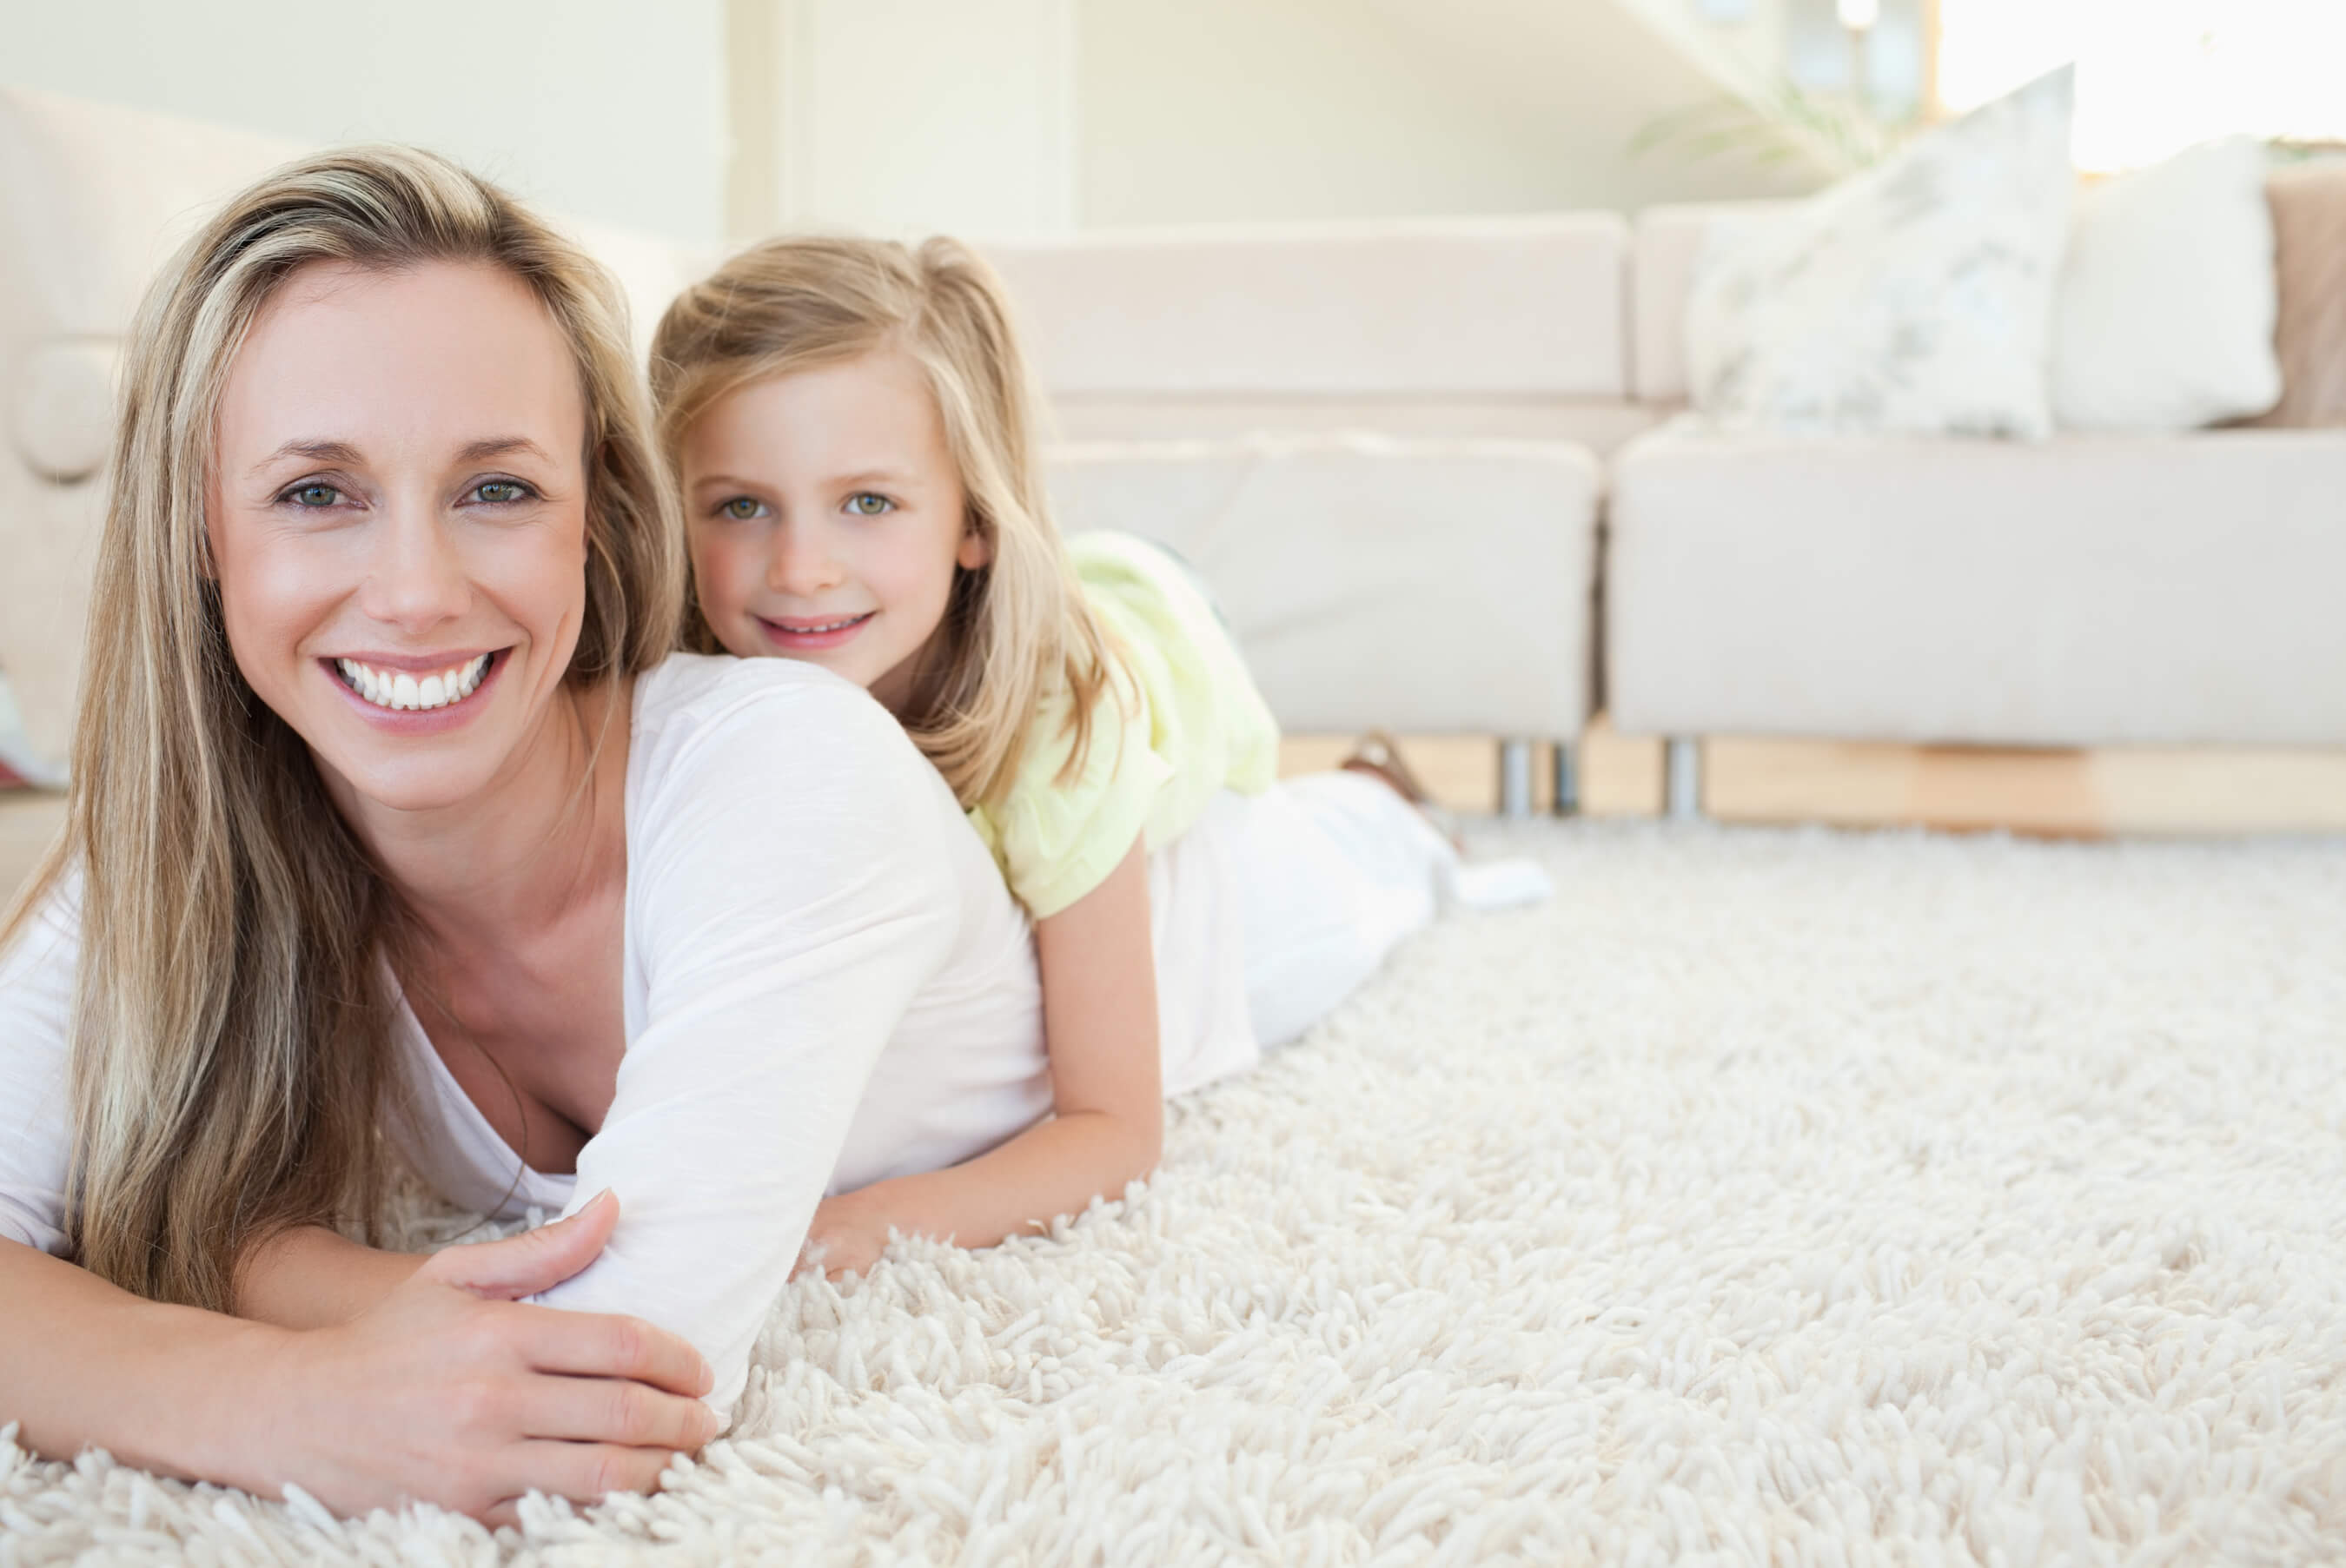 carpet cleaning oklahoma city